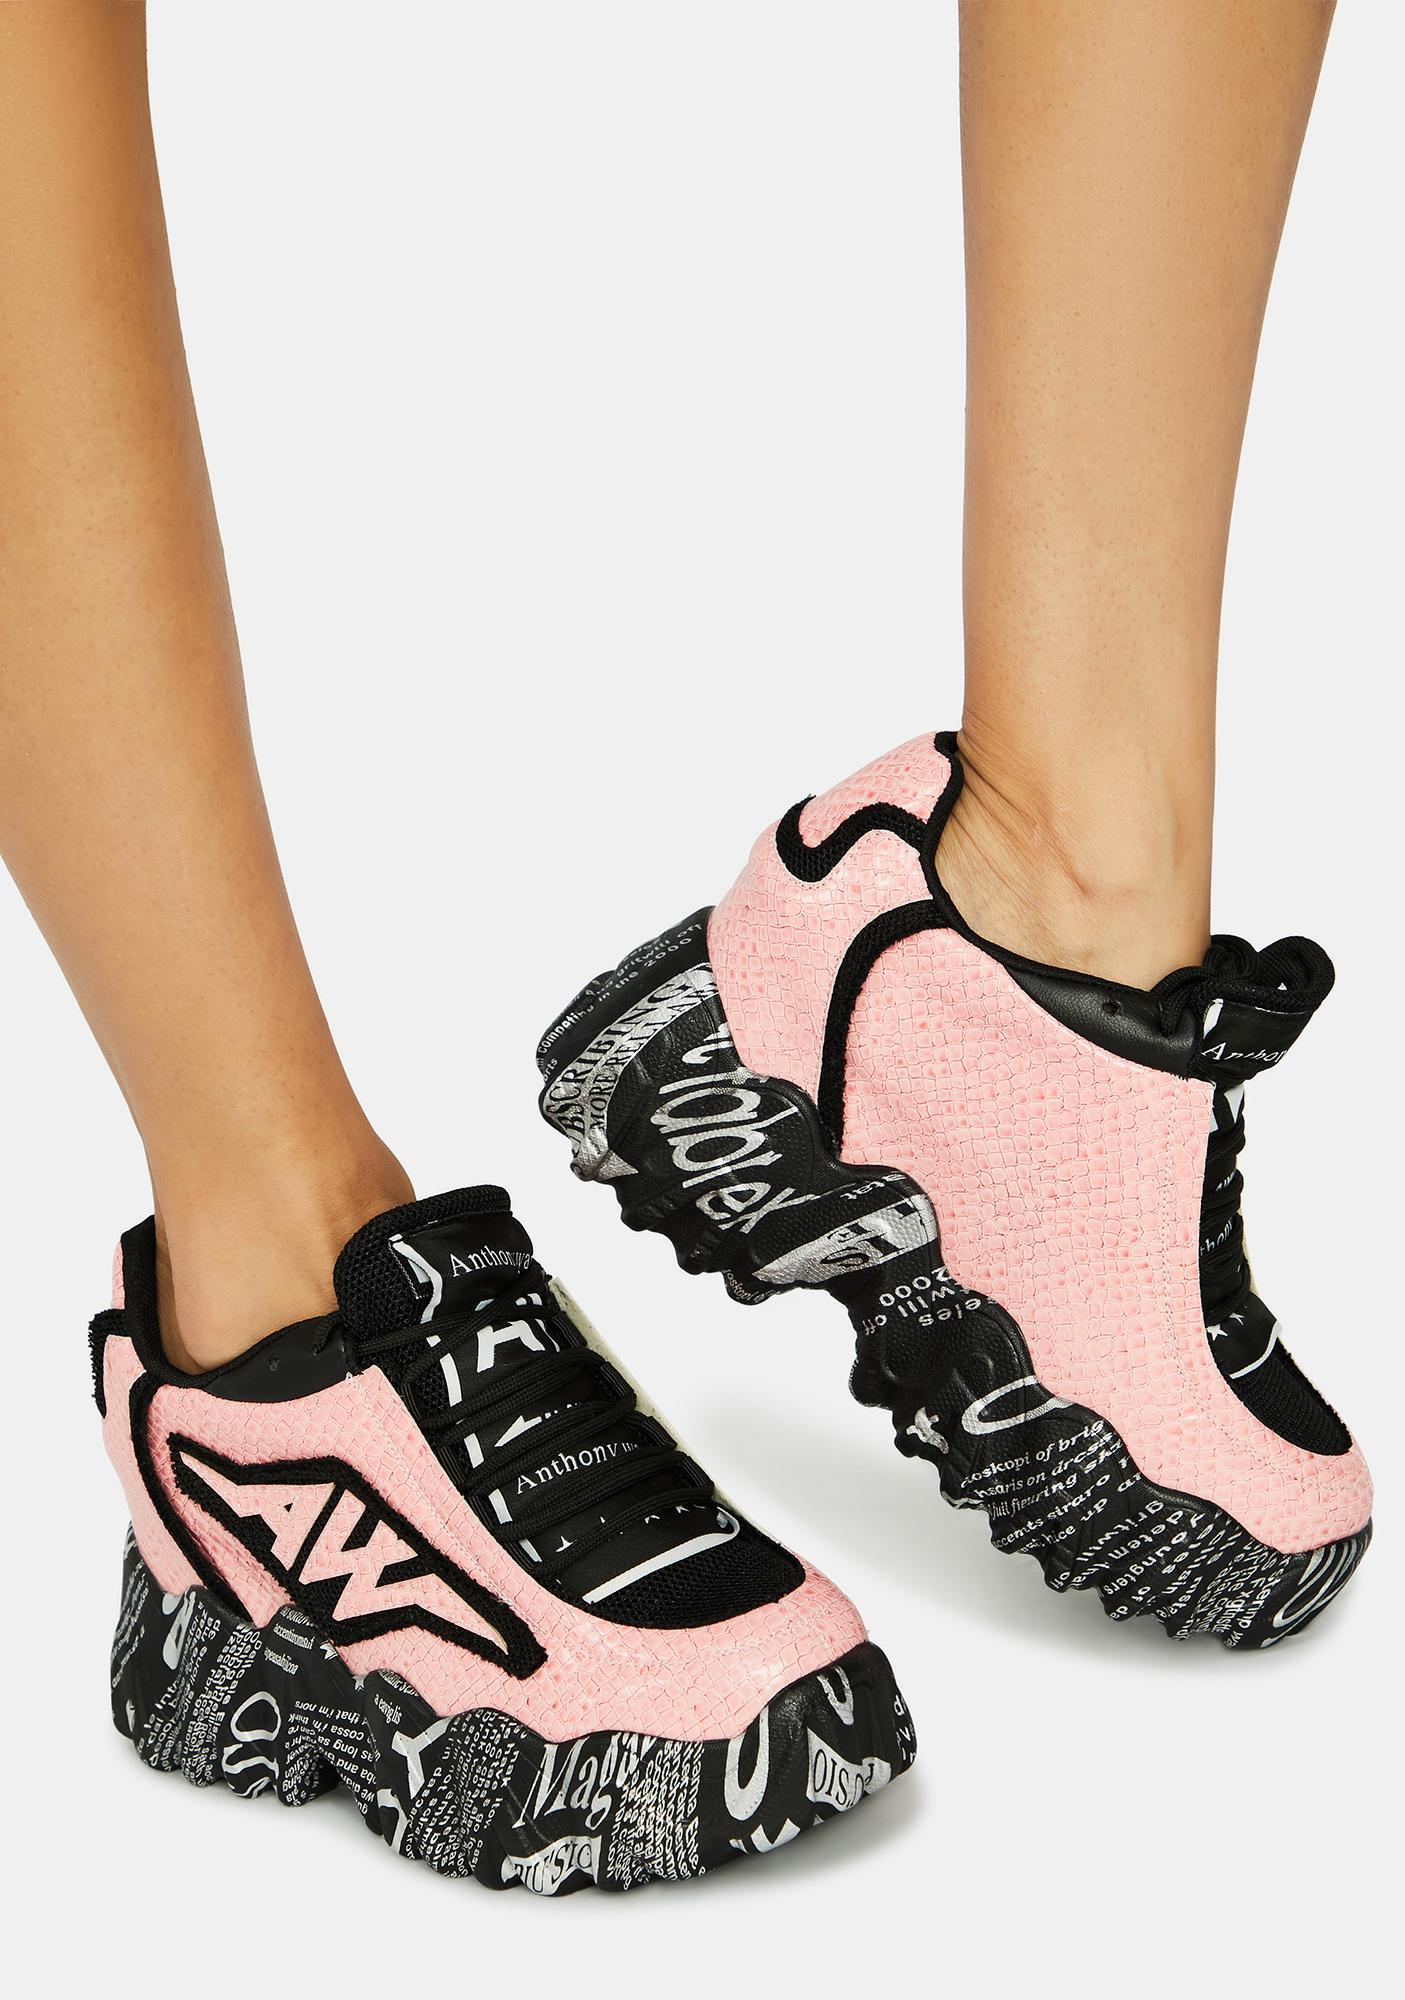 Anthony Wang Pink Blackberry Sneakers